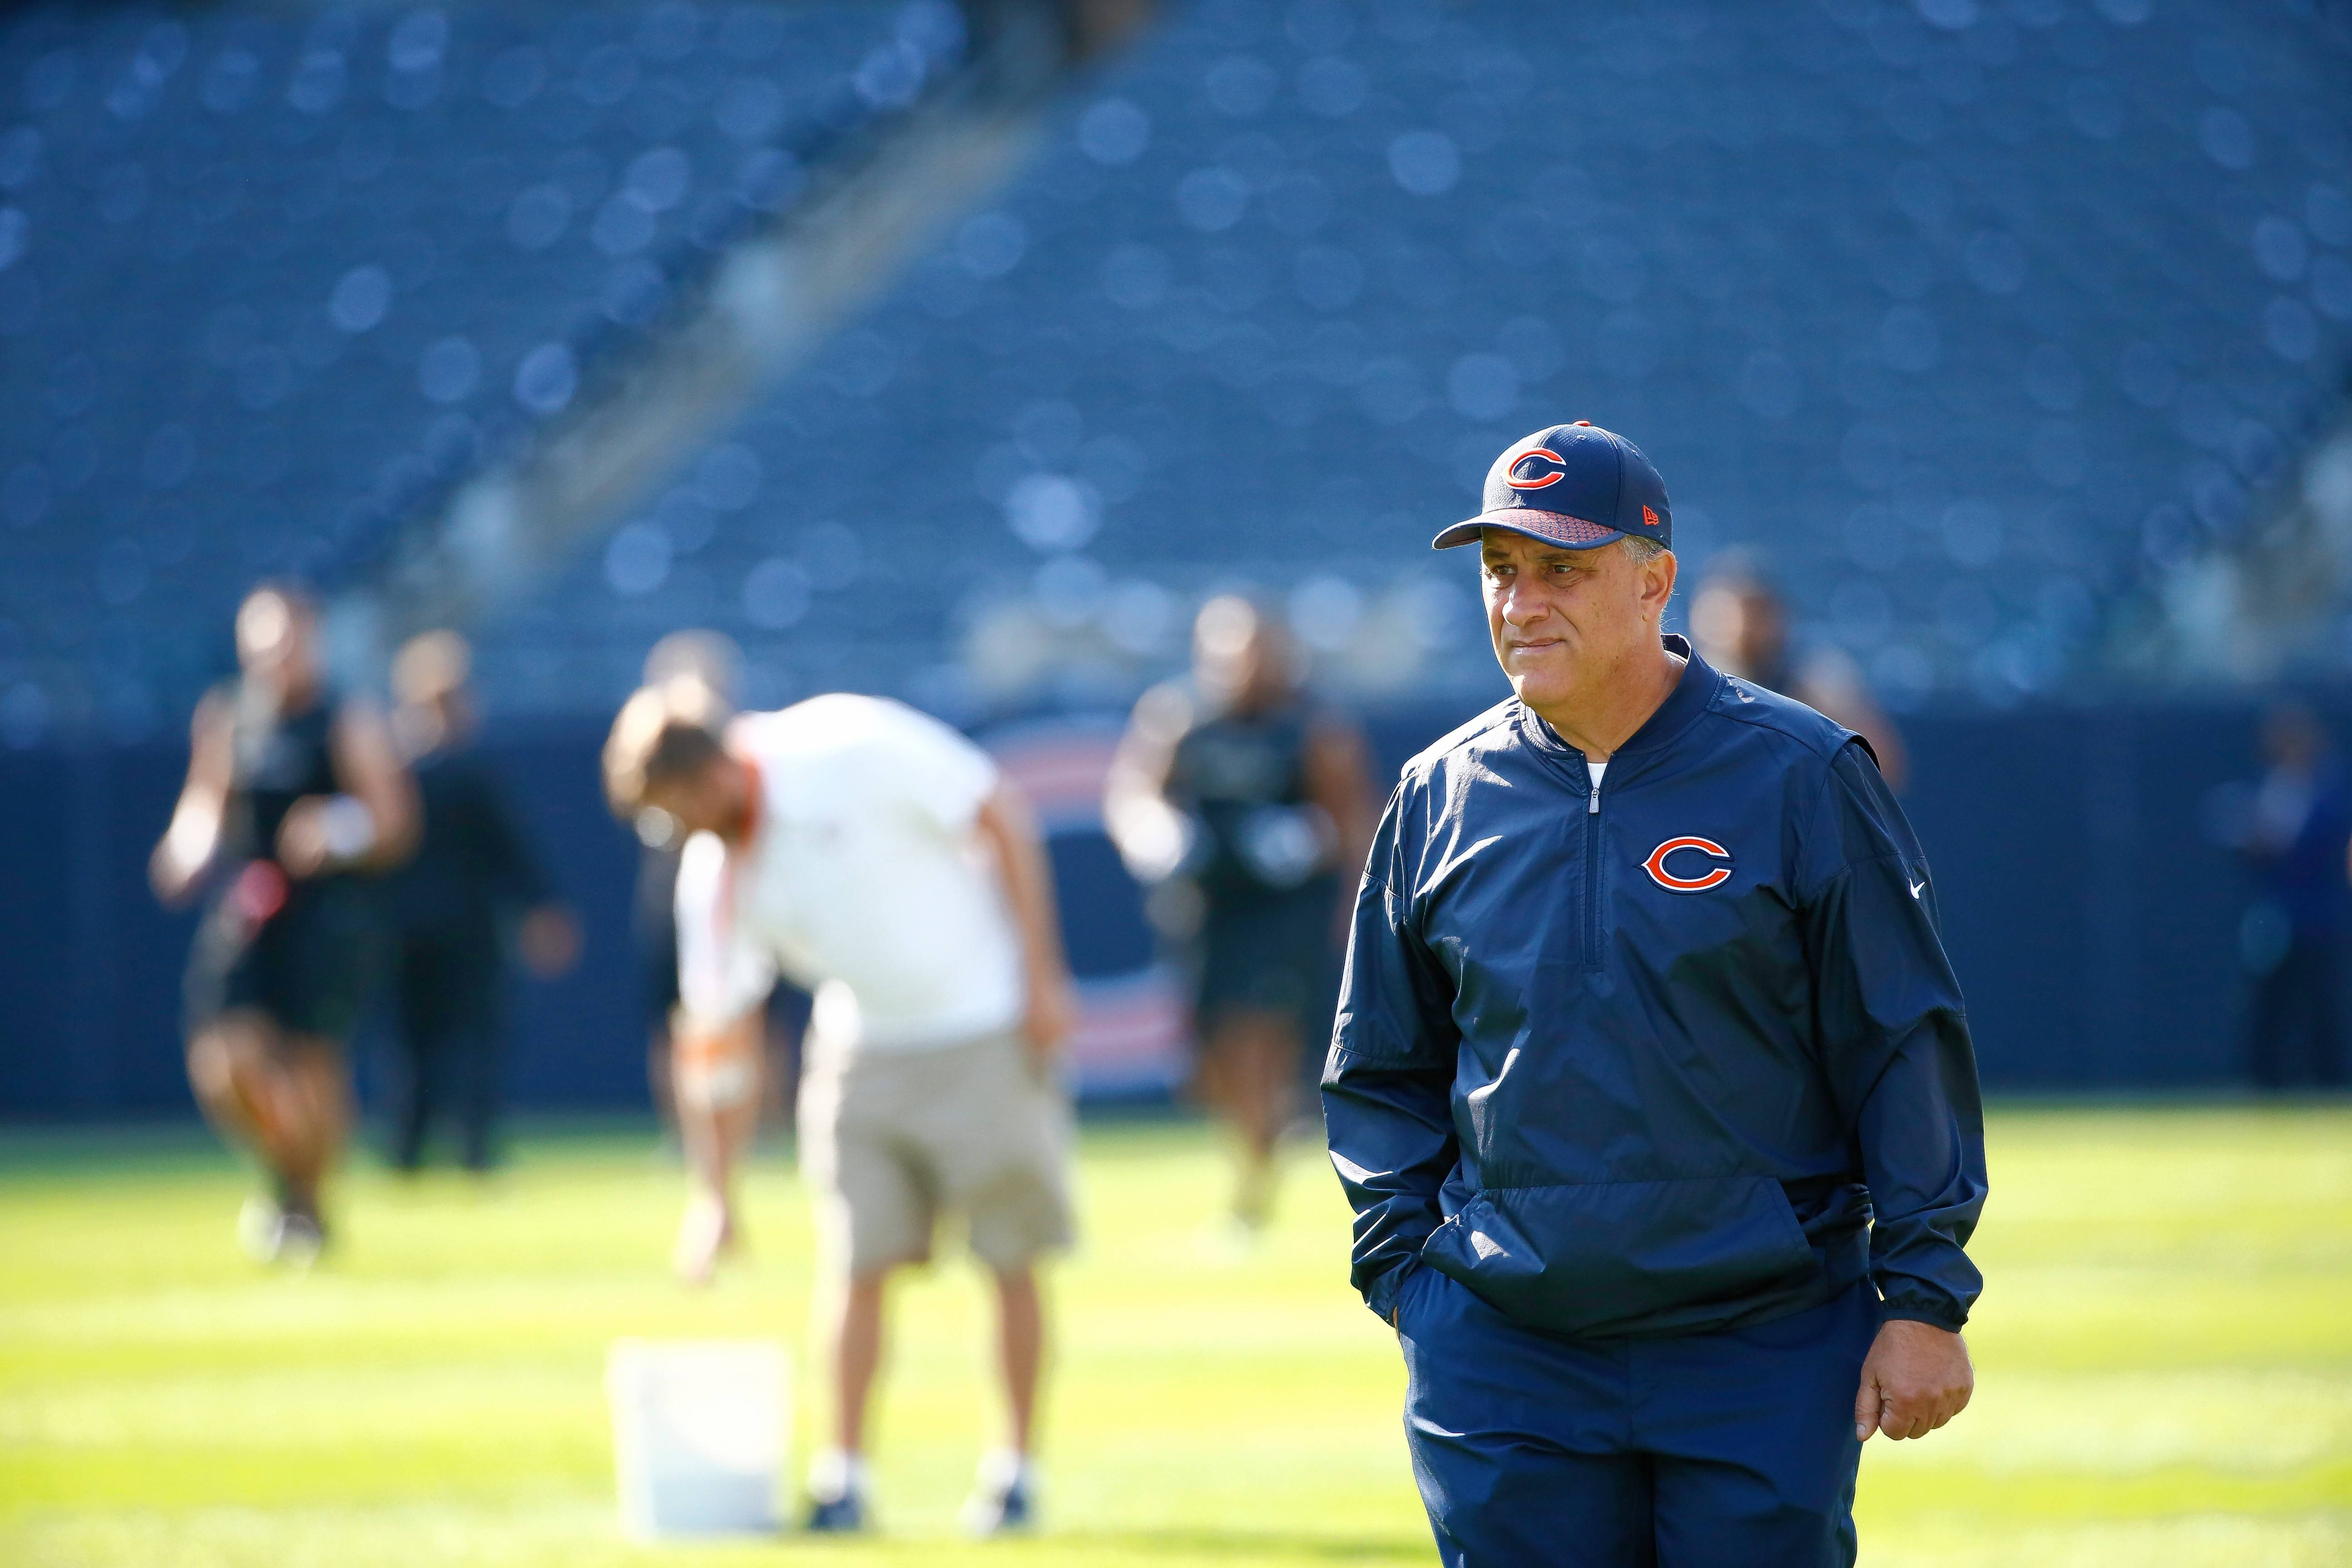 Bears interview Vic Fangio for head coaching job